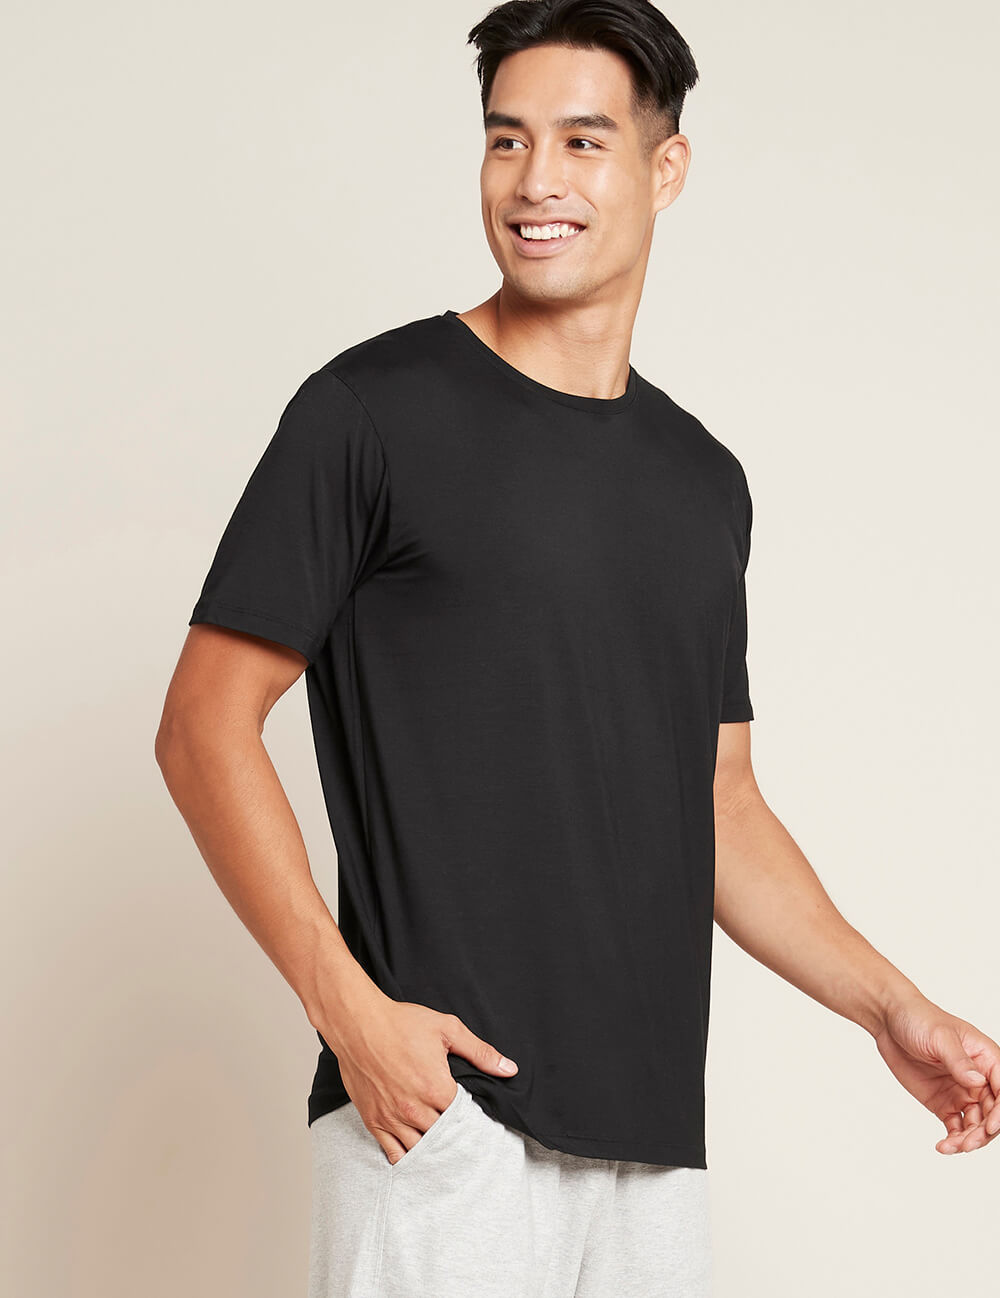 Men's Crew Neck T-Shirt - Black - Boody Eco Wear